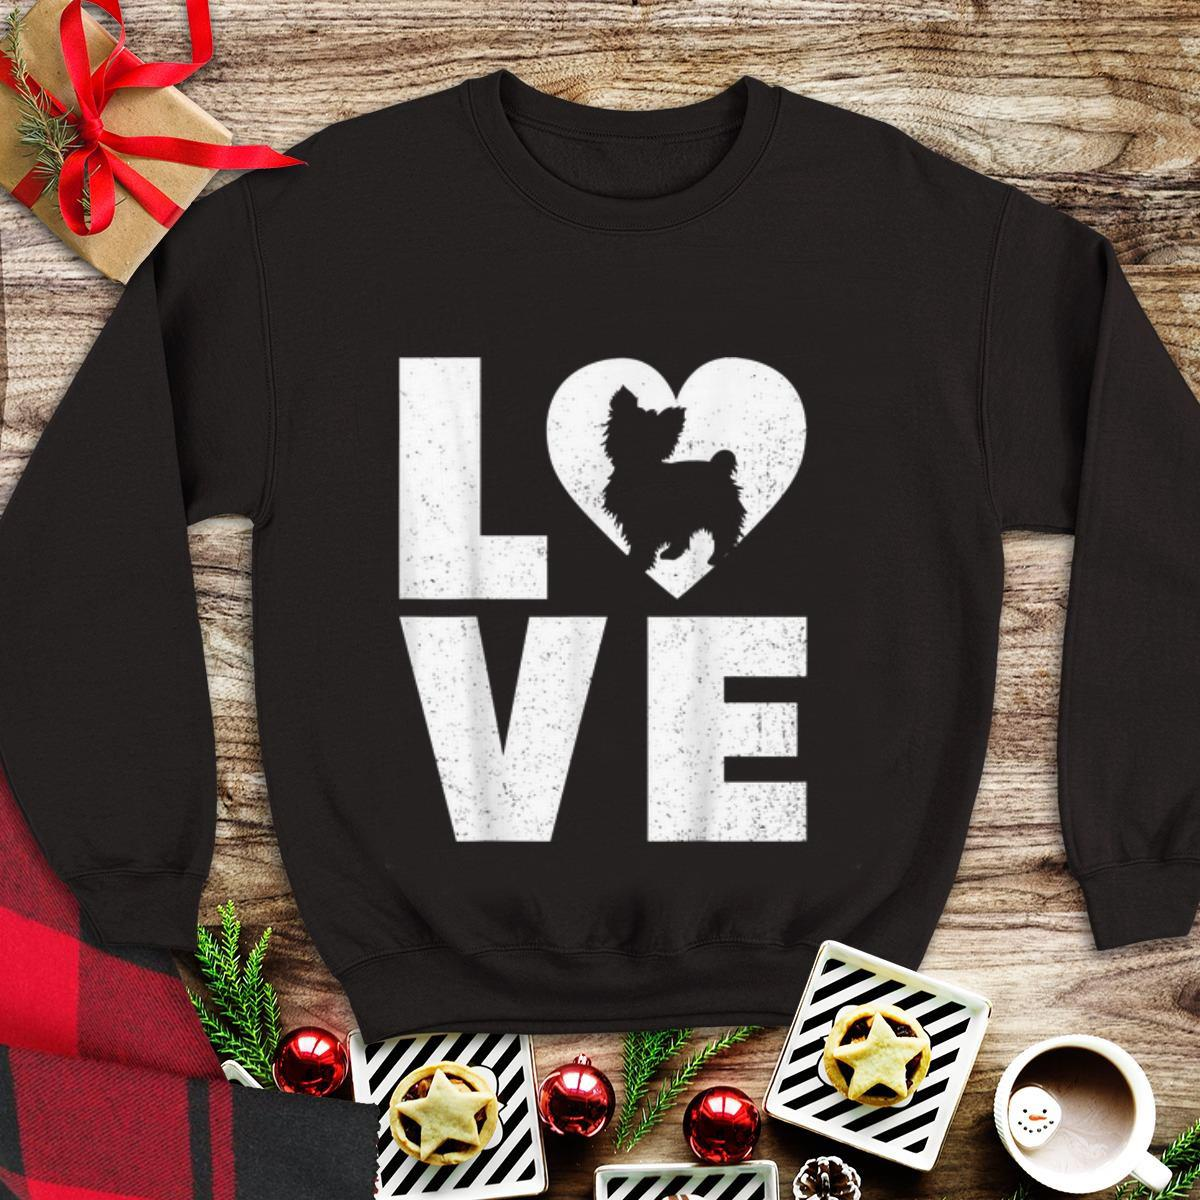 Top Shih Poo Dog in Heart Love shirt